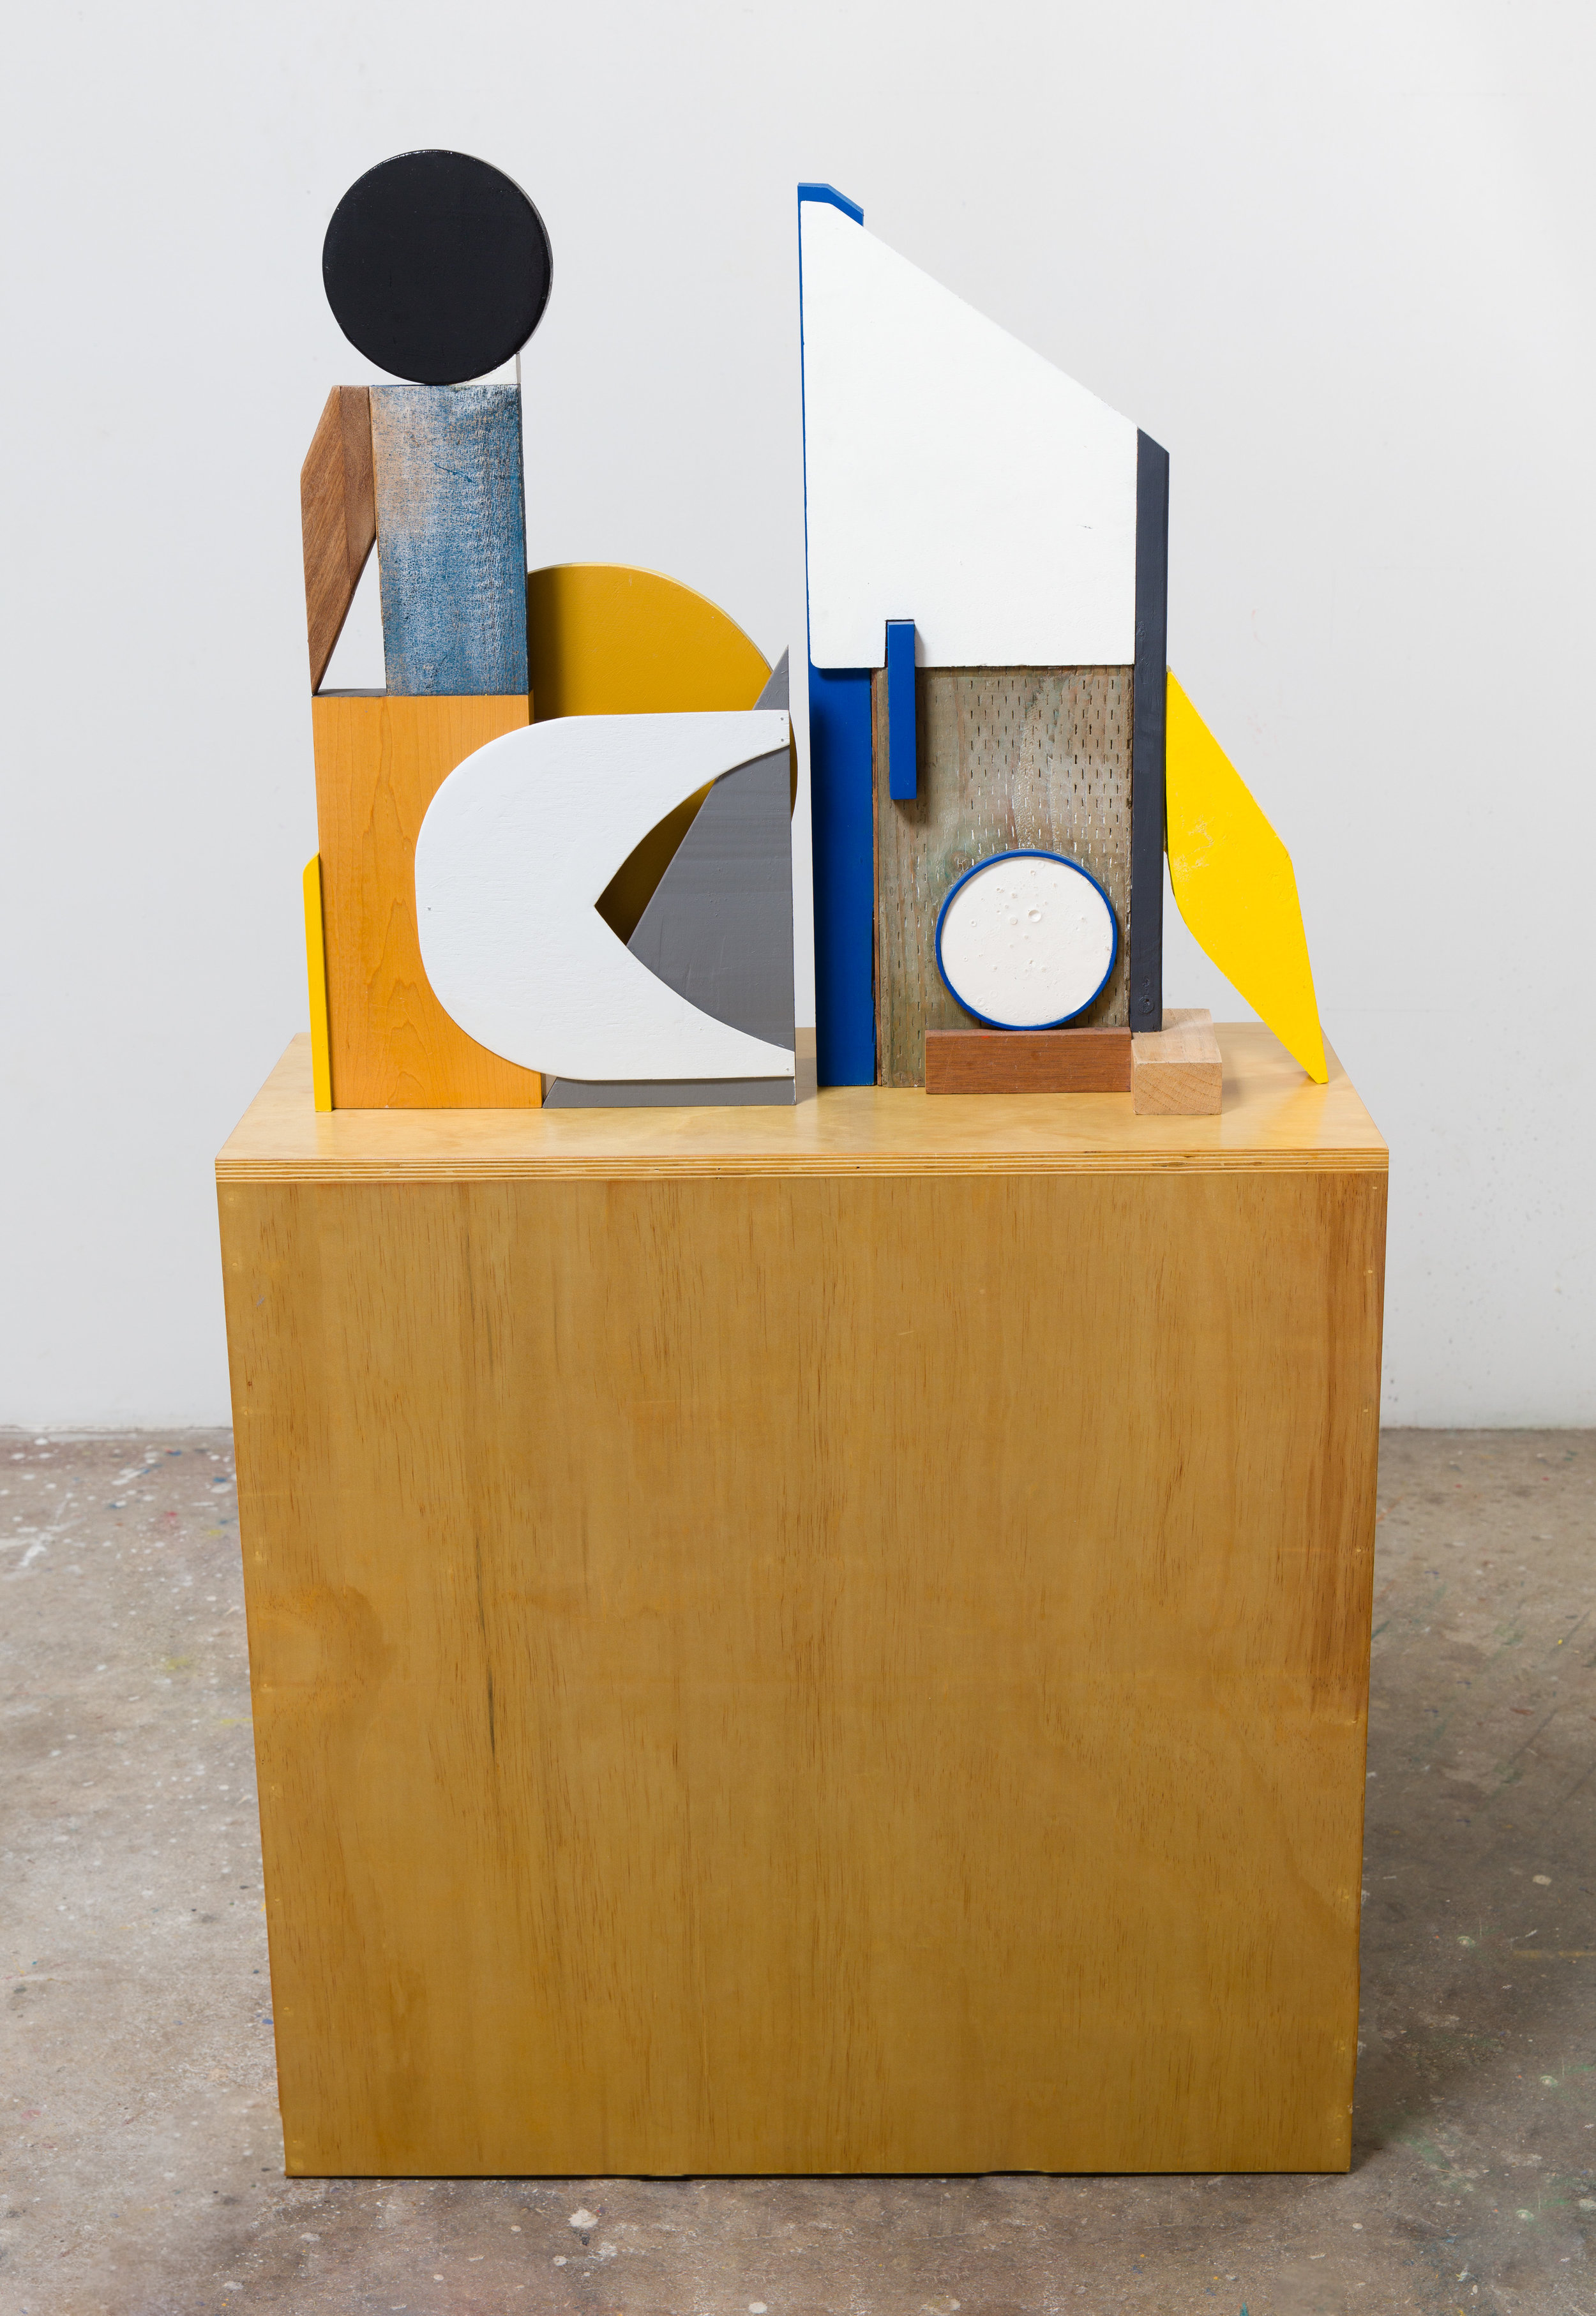 """Antonio Puleo. """"OOO\O"""" Wood, plaster, oil, acrylic, flashe, and carpet foam. 58 x 32 x 14in. 2017.  (View of verso)."""